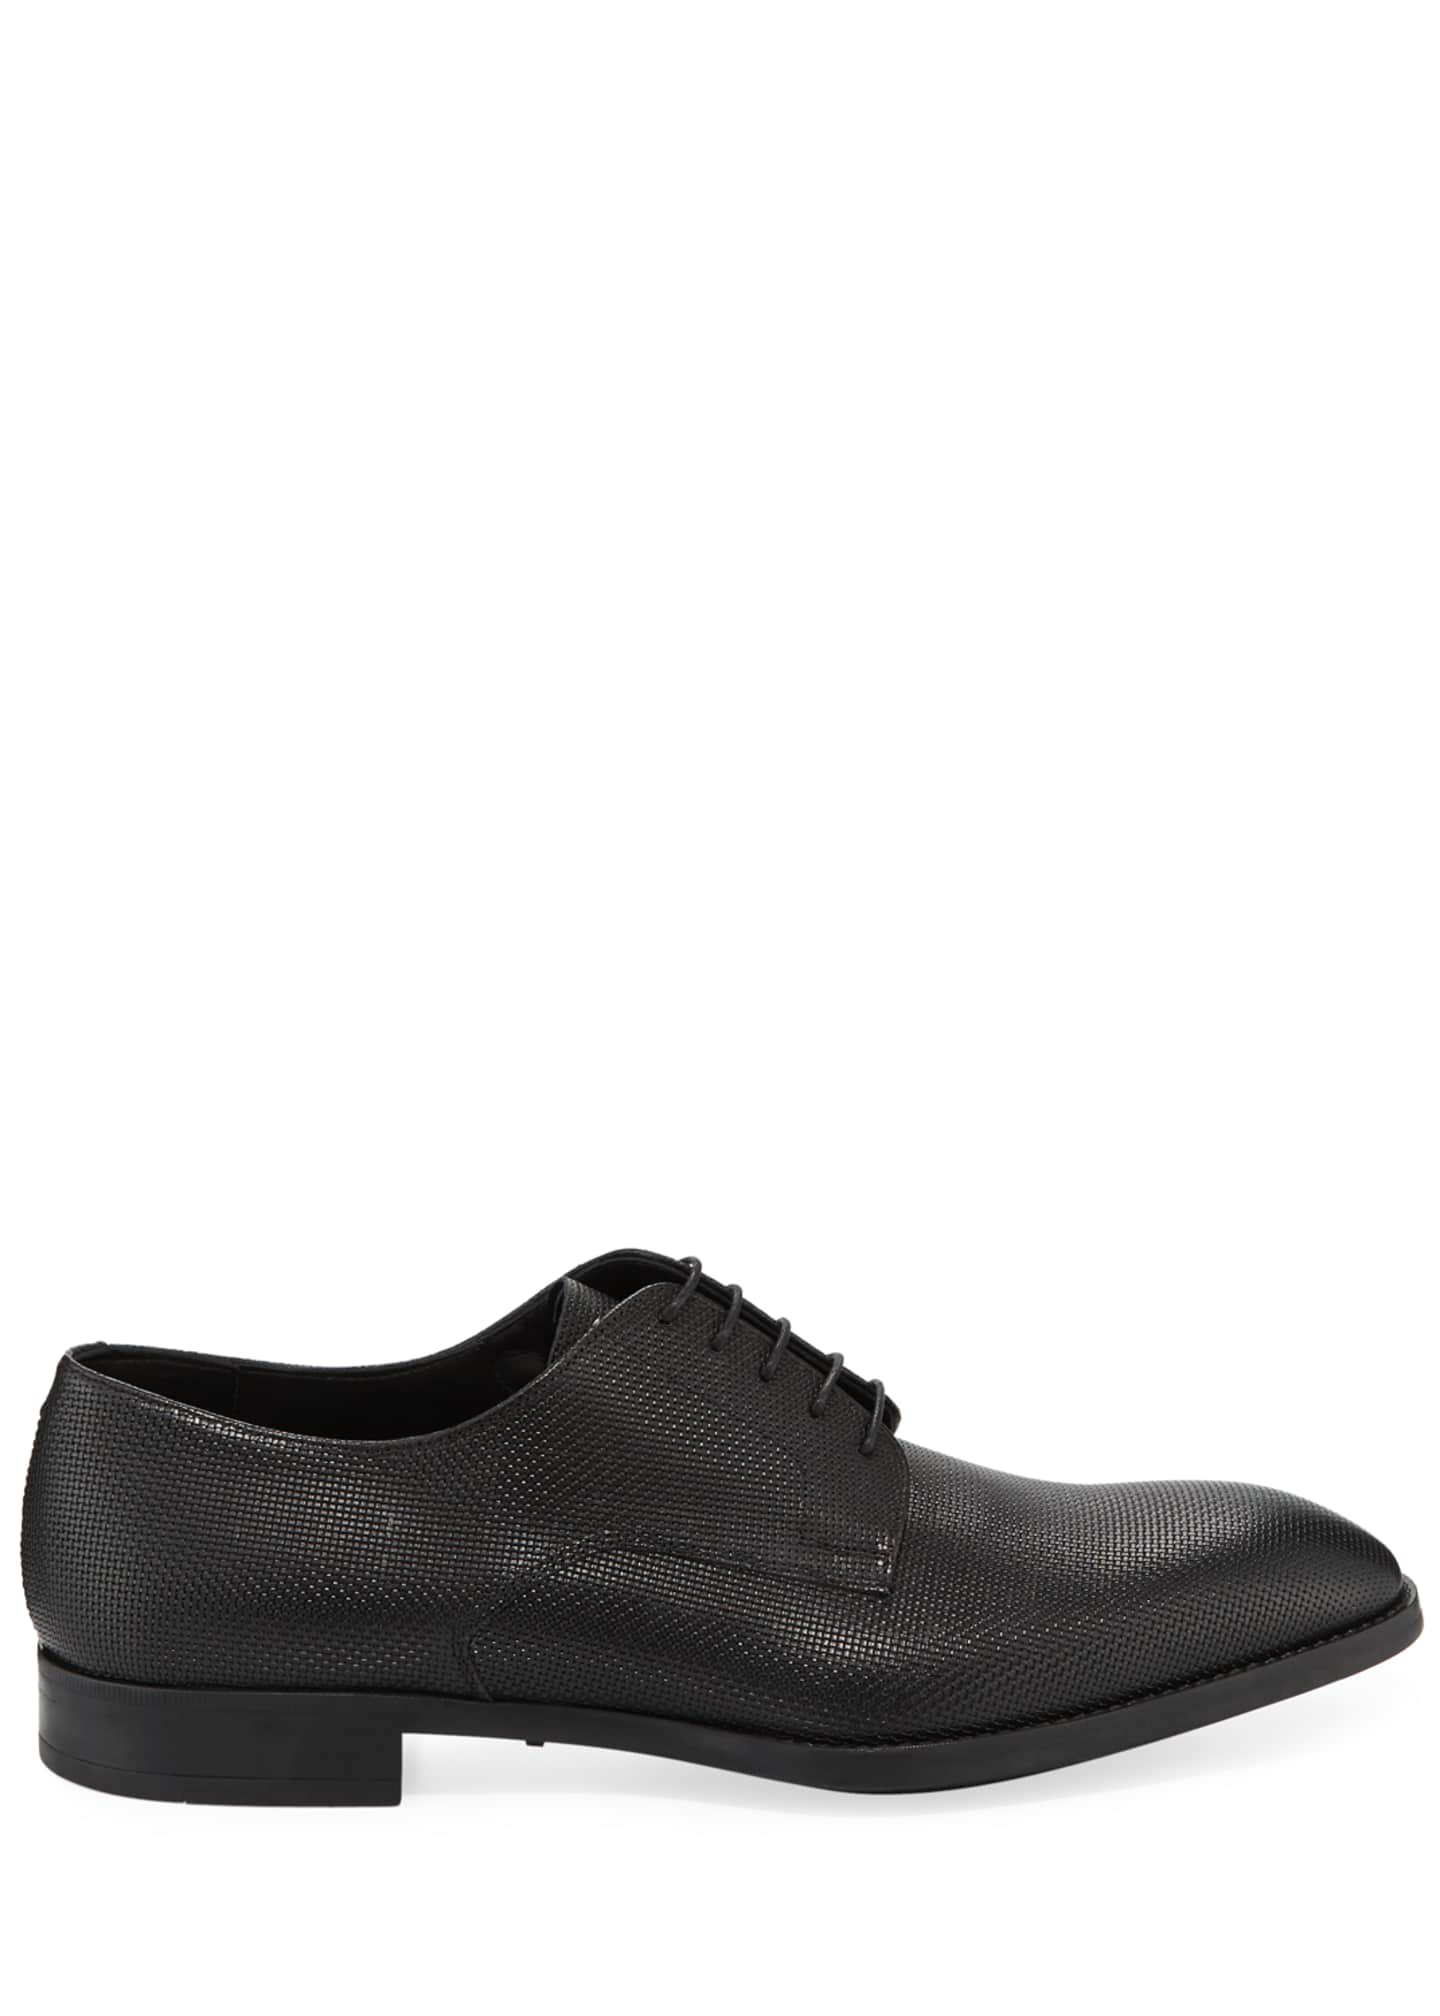 Image 3 of 3: Men's Textured Leather Derby Shoes